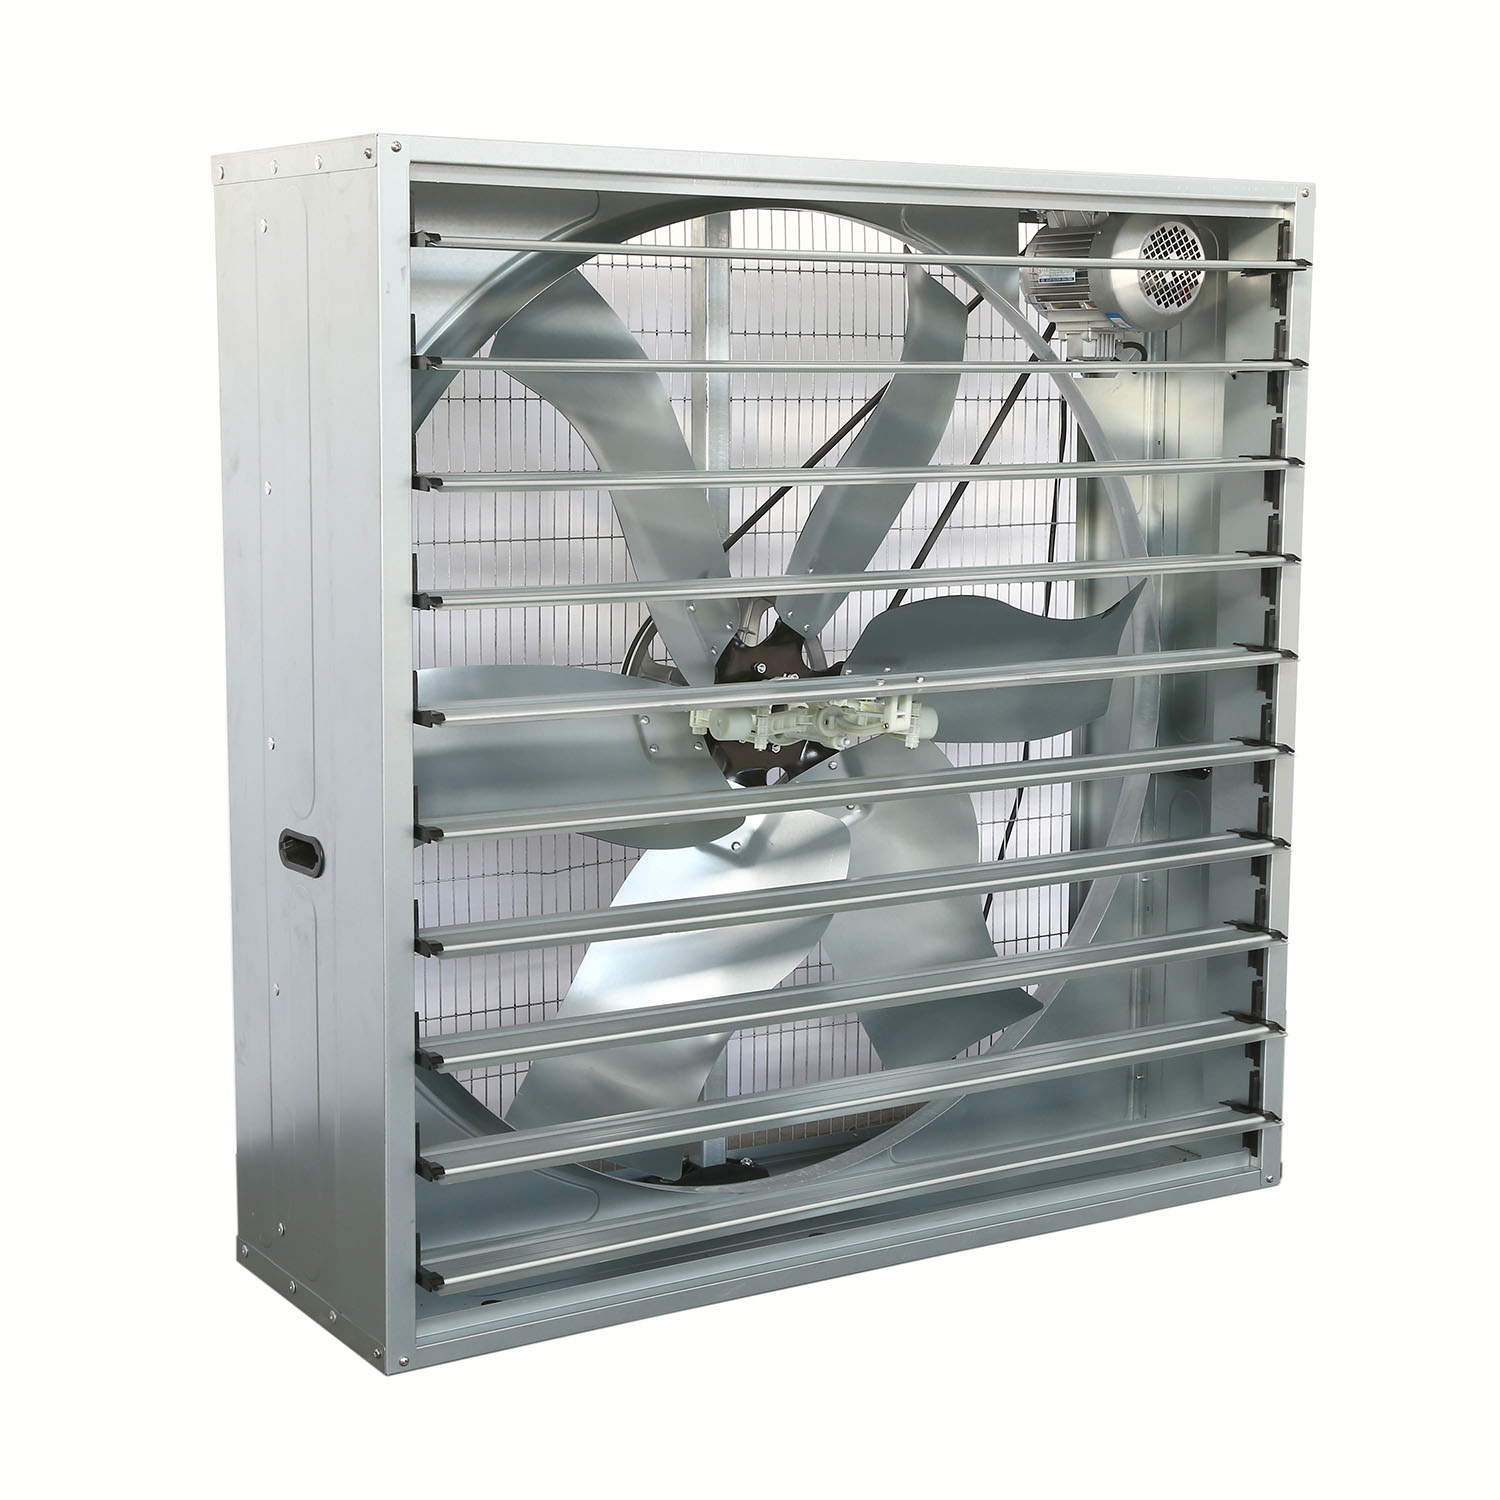 Hot Item Centrifugal Shutter Industrial Ventilation Exhaust Fan For Poultry Farm